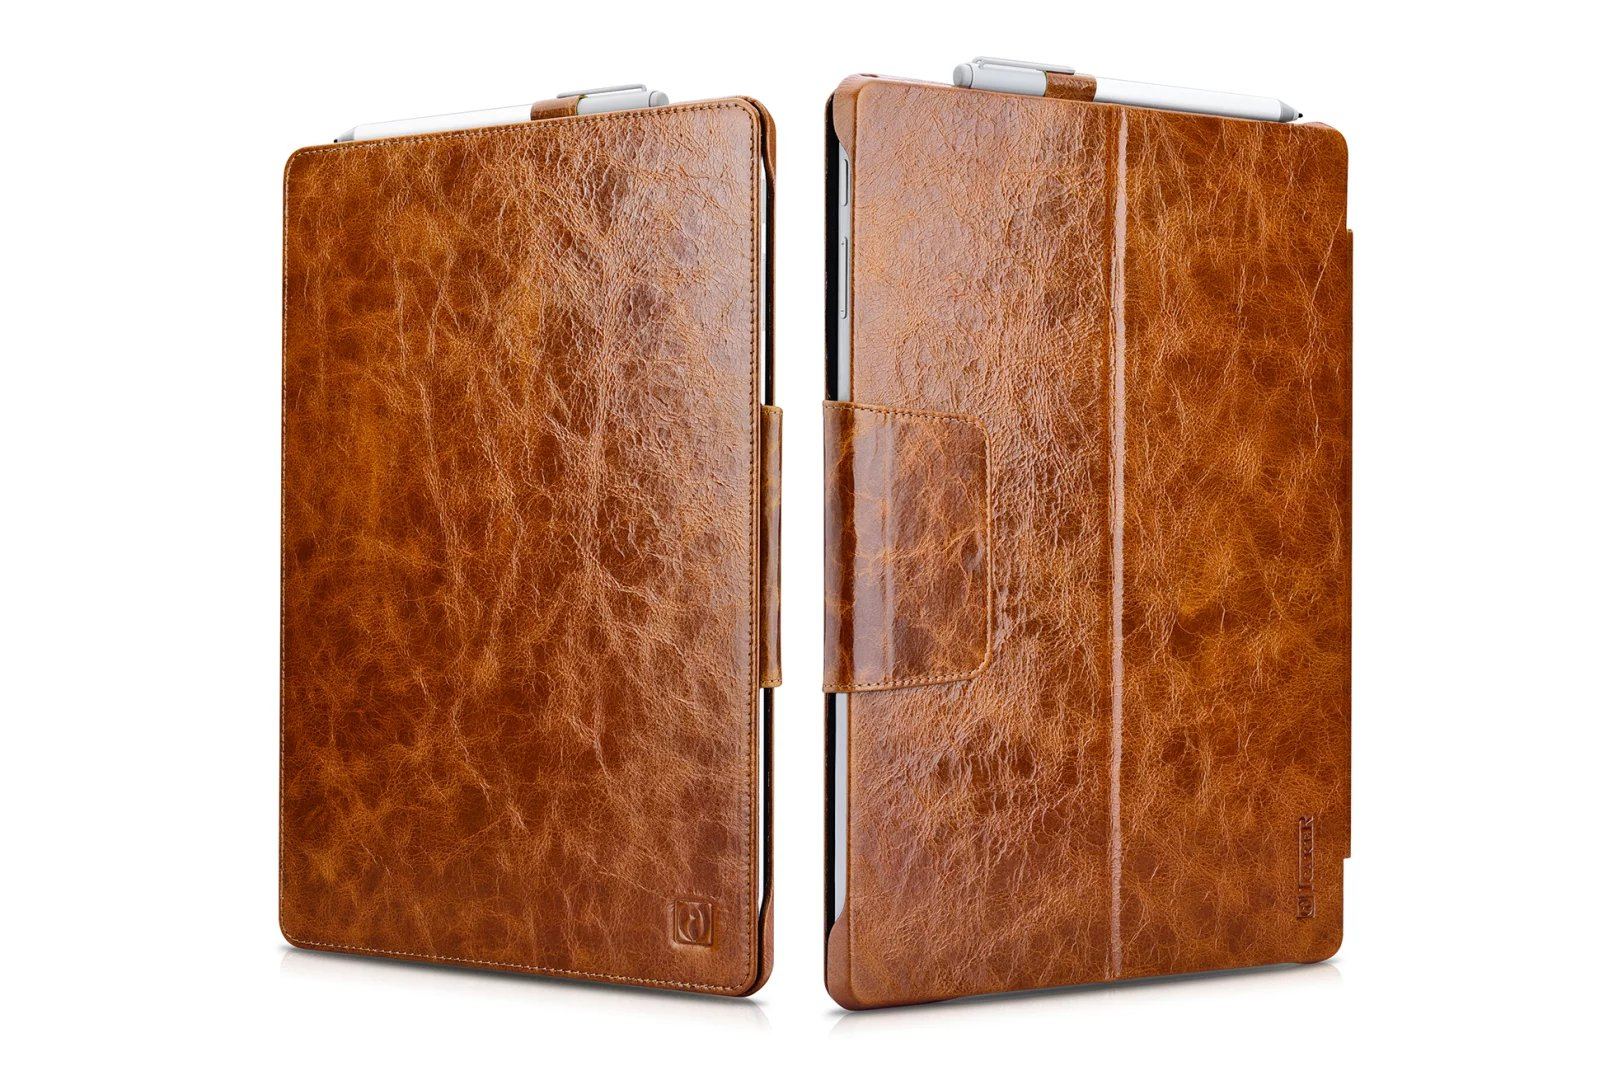 luxury-genuine-leather-case-for-microsoft-surface-pro-8-6-12-3-retro-vintage-oil-wax-tablet-funda-for-surface-pro-5-4-flip-cover